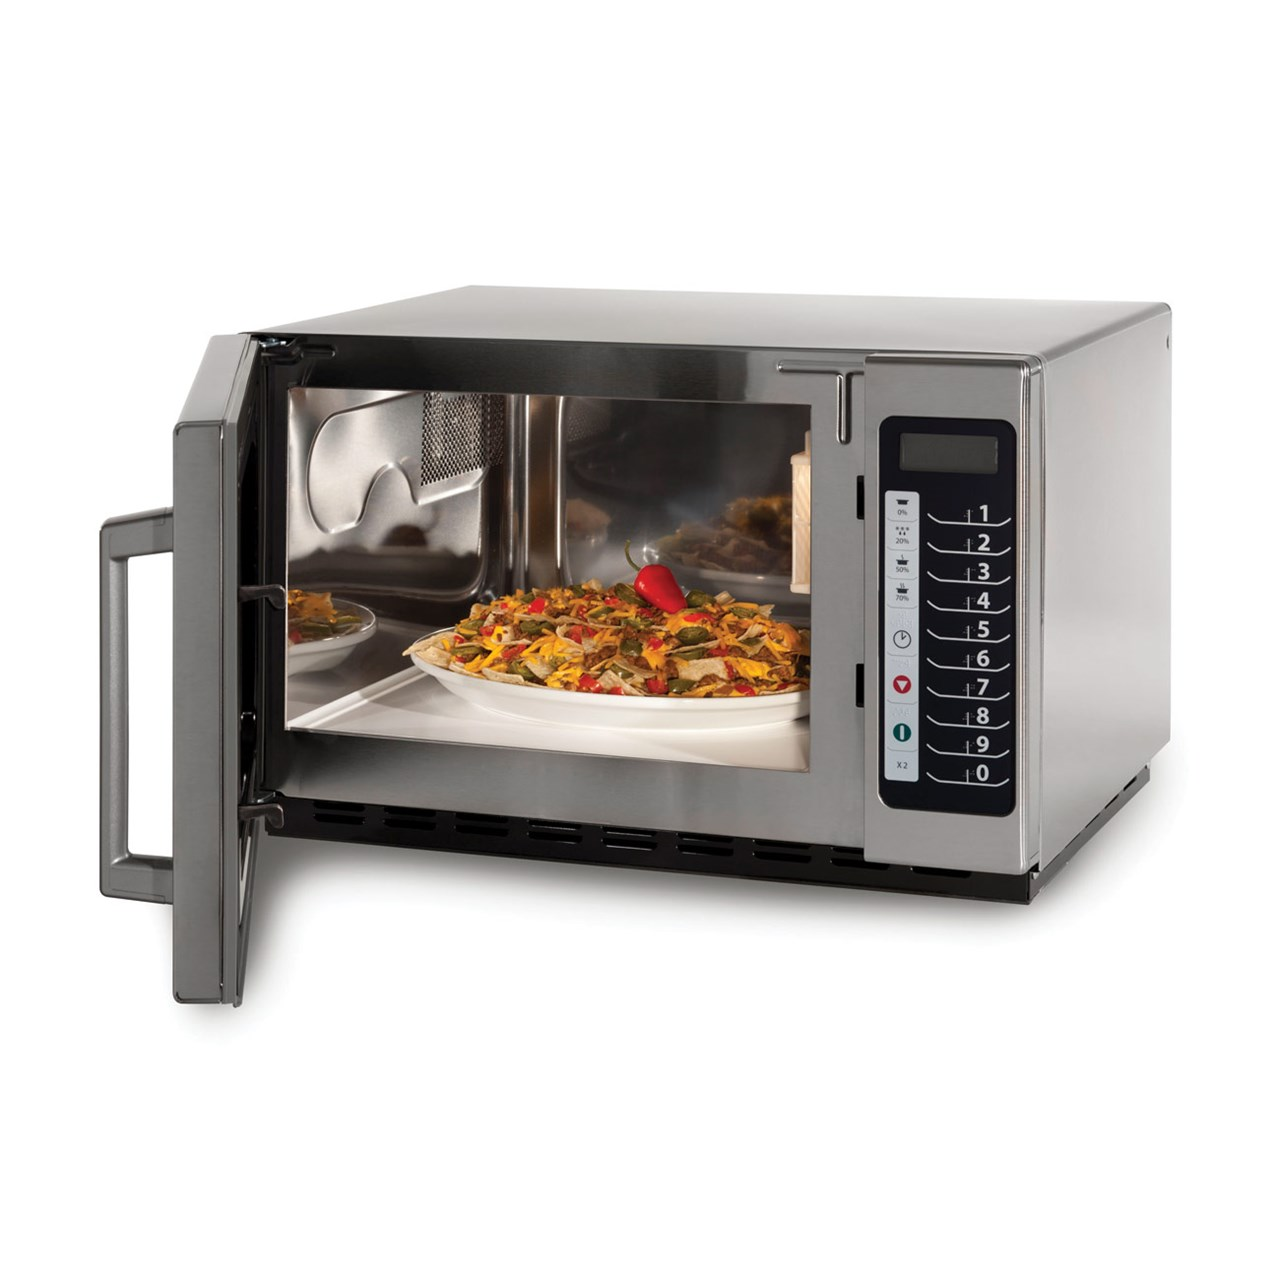 Roasting Microwave Oven: Amana Commercial Microwave Oven- Braille